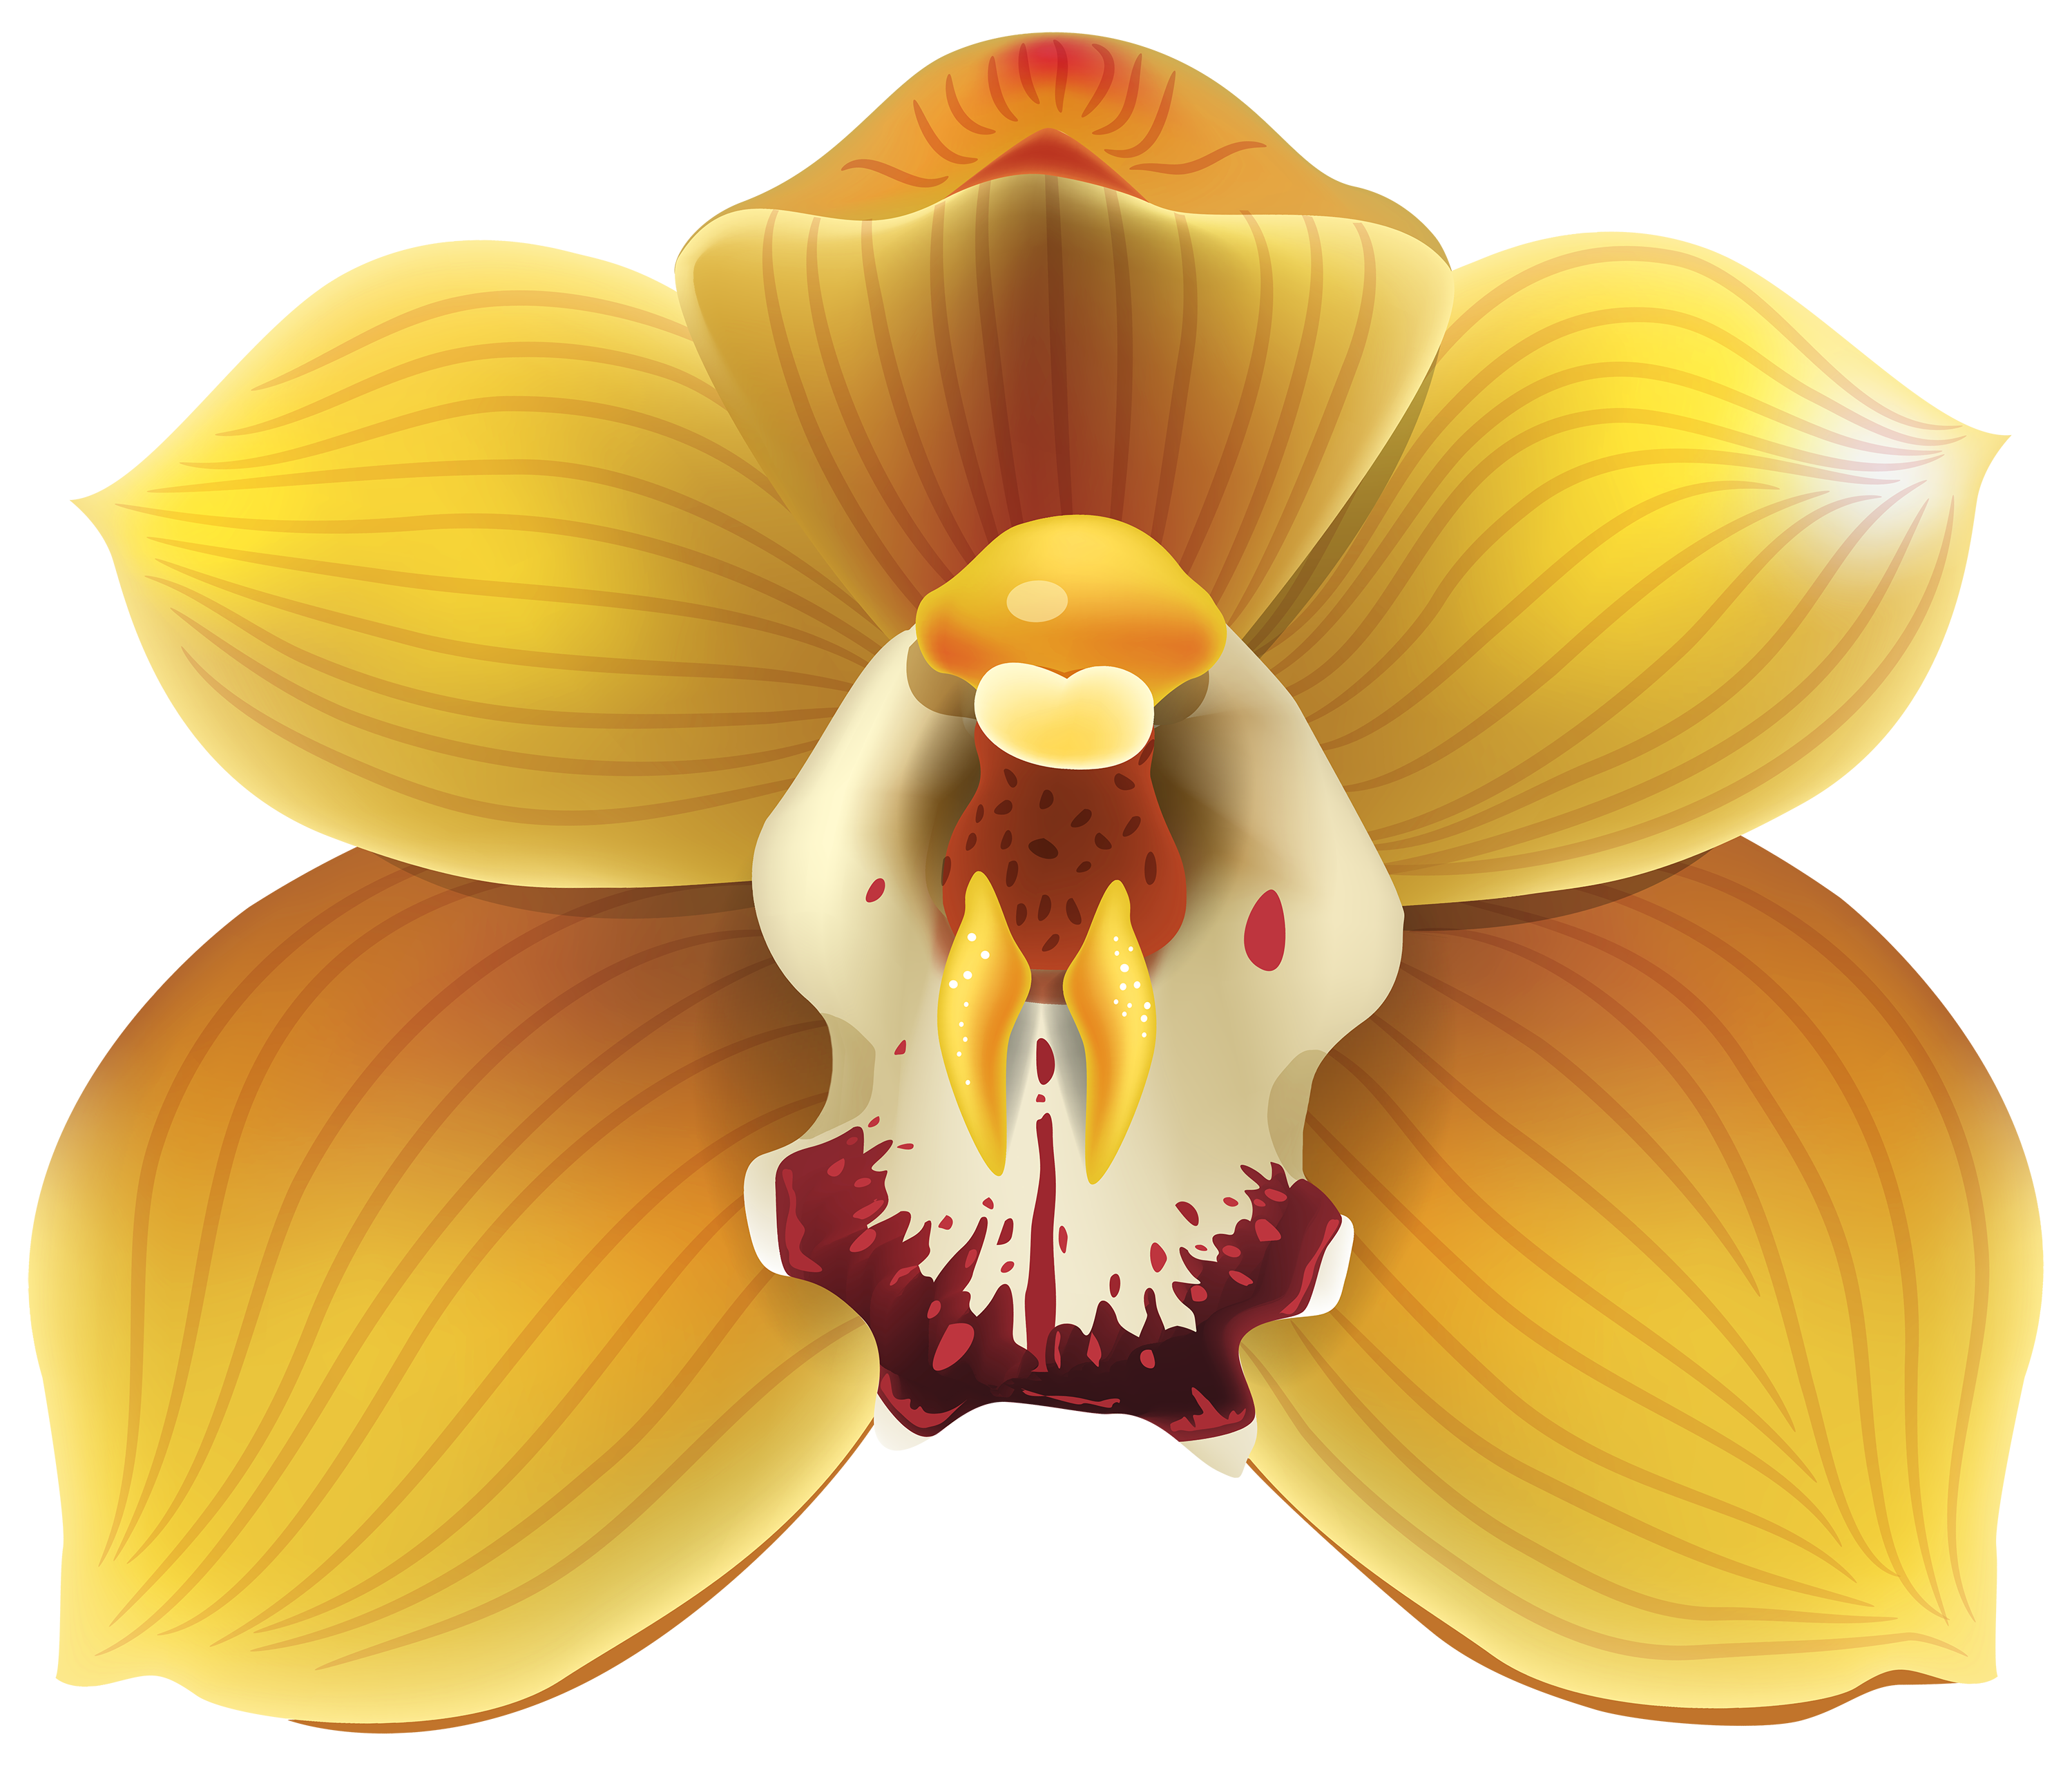 Orchid clipart #1, Download drawings